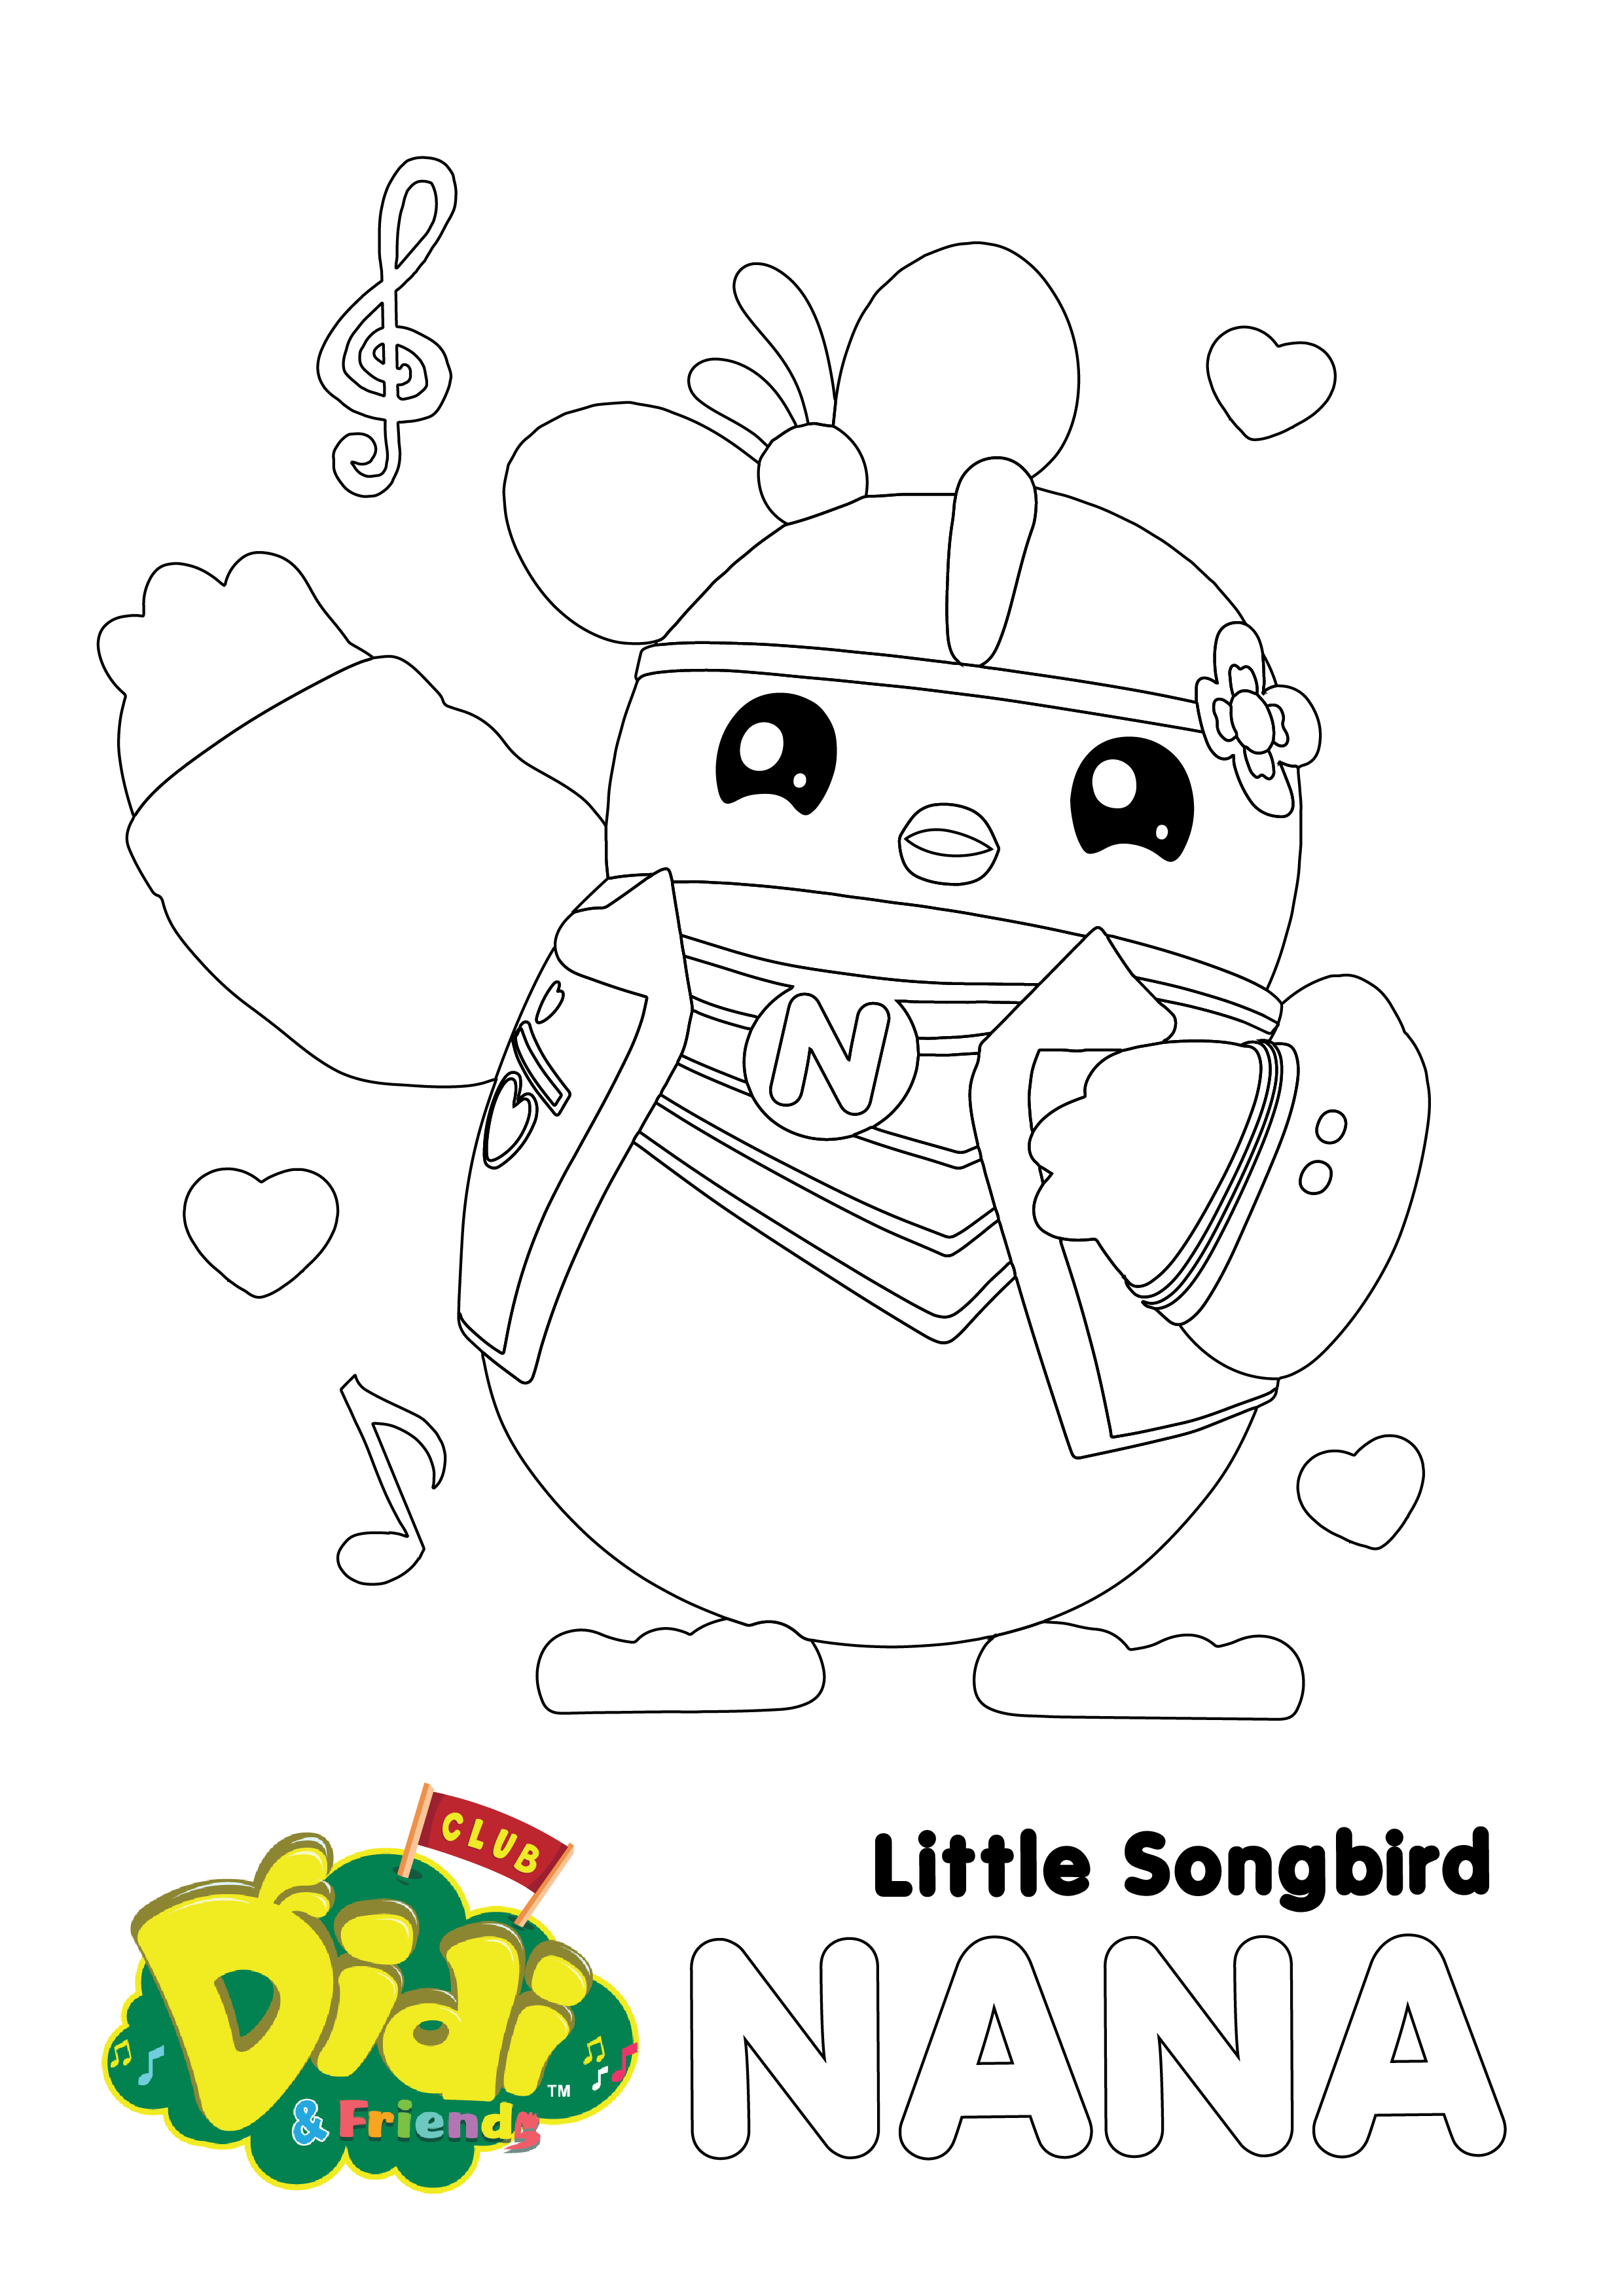 Download This Free Colouring Sheet Of Nana Click Here To